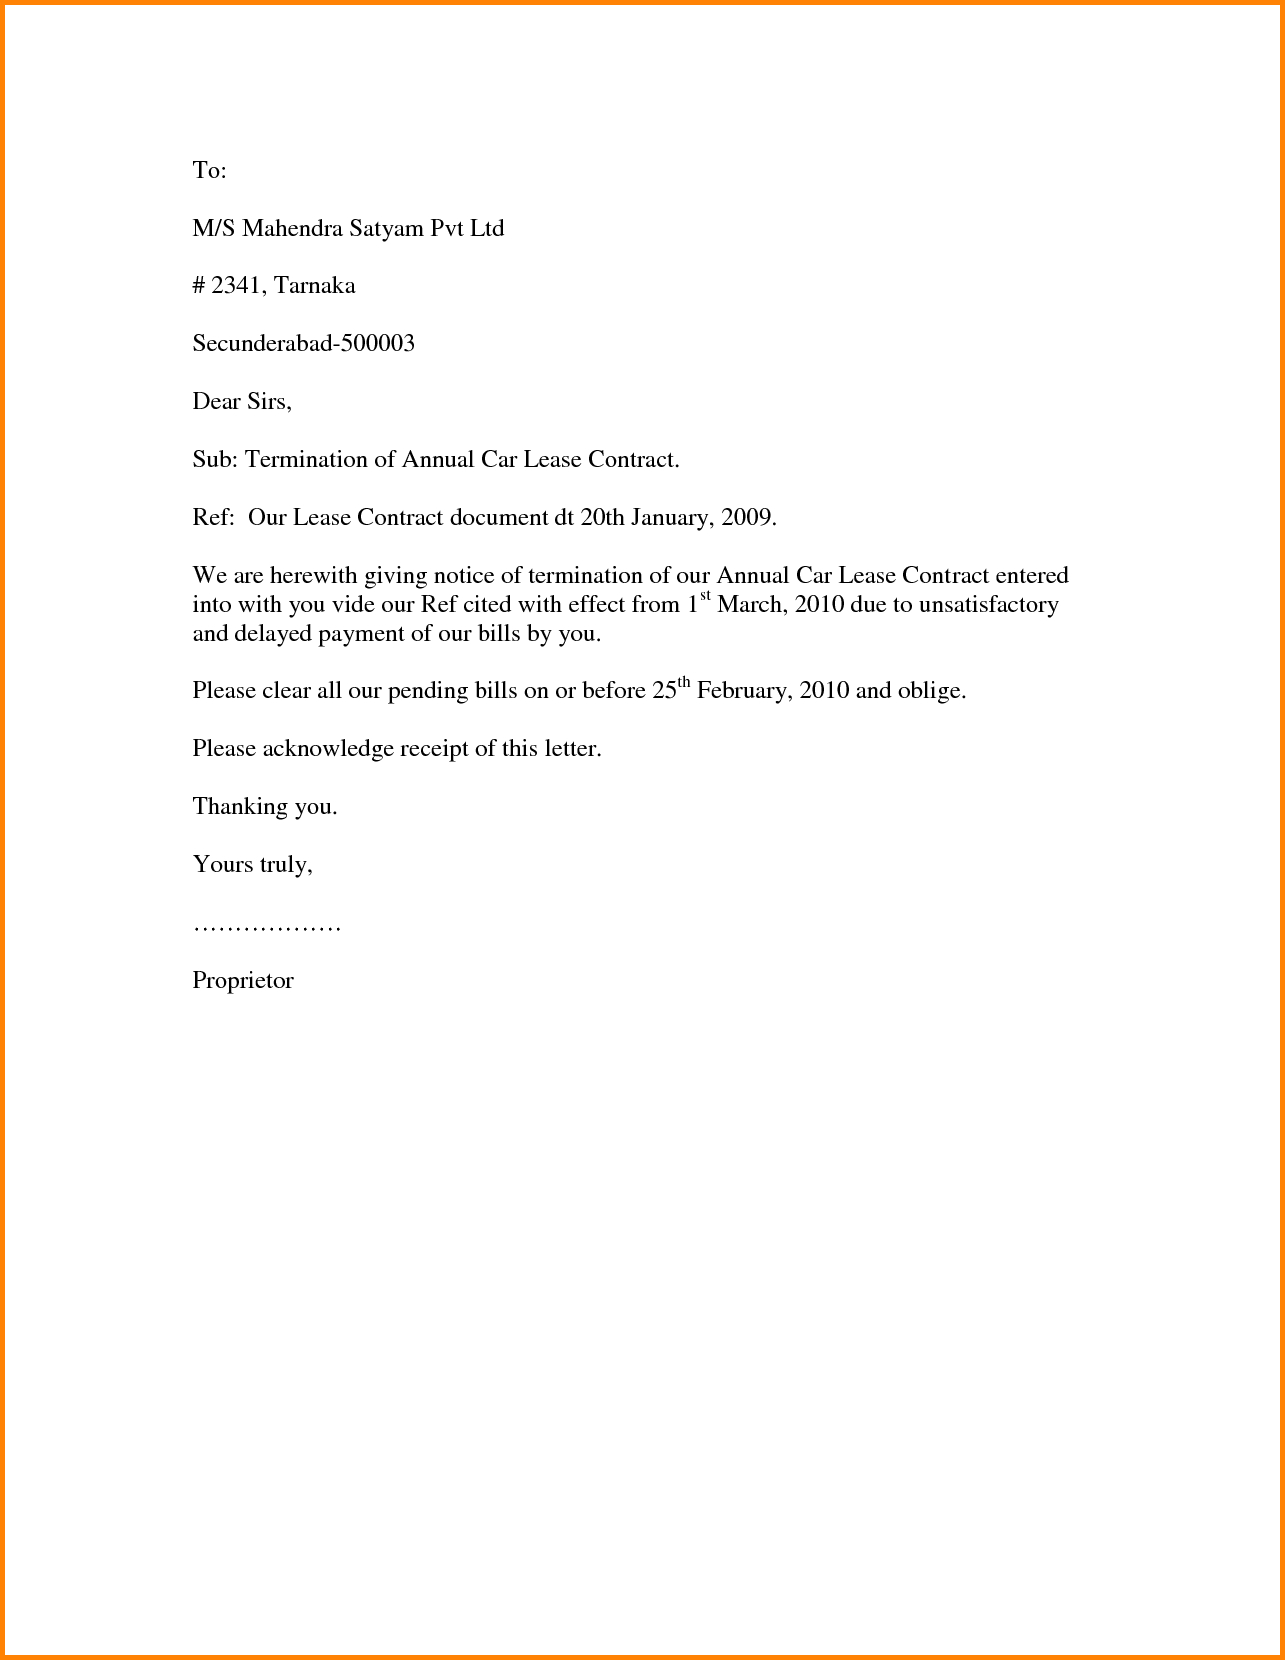 Employee Termination Letter Template Free Collection | Letter ...